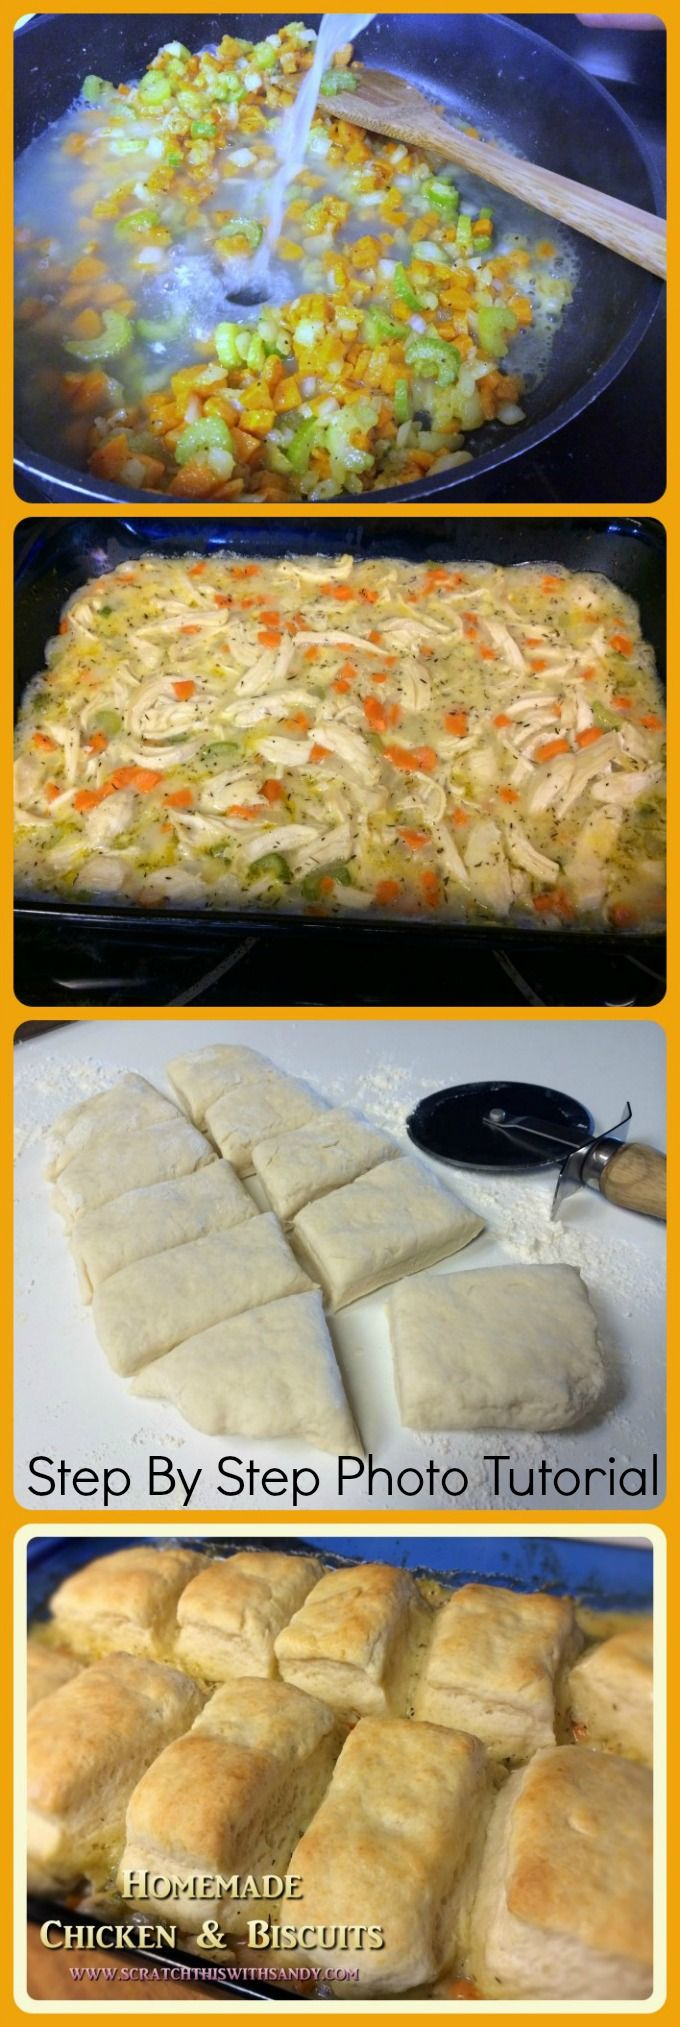 Homemade Chicken and Biscuits Step by Step Photo Tutorial All from scratch in an hour Great Comfort Food!